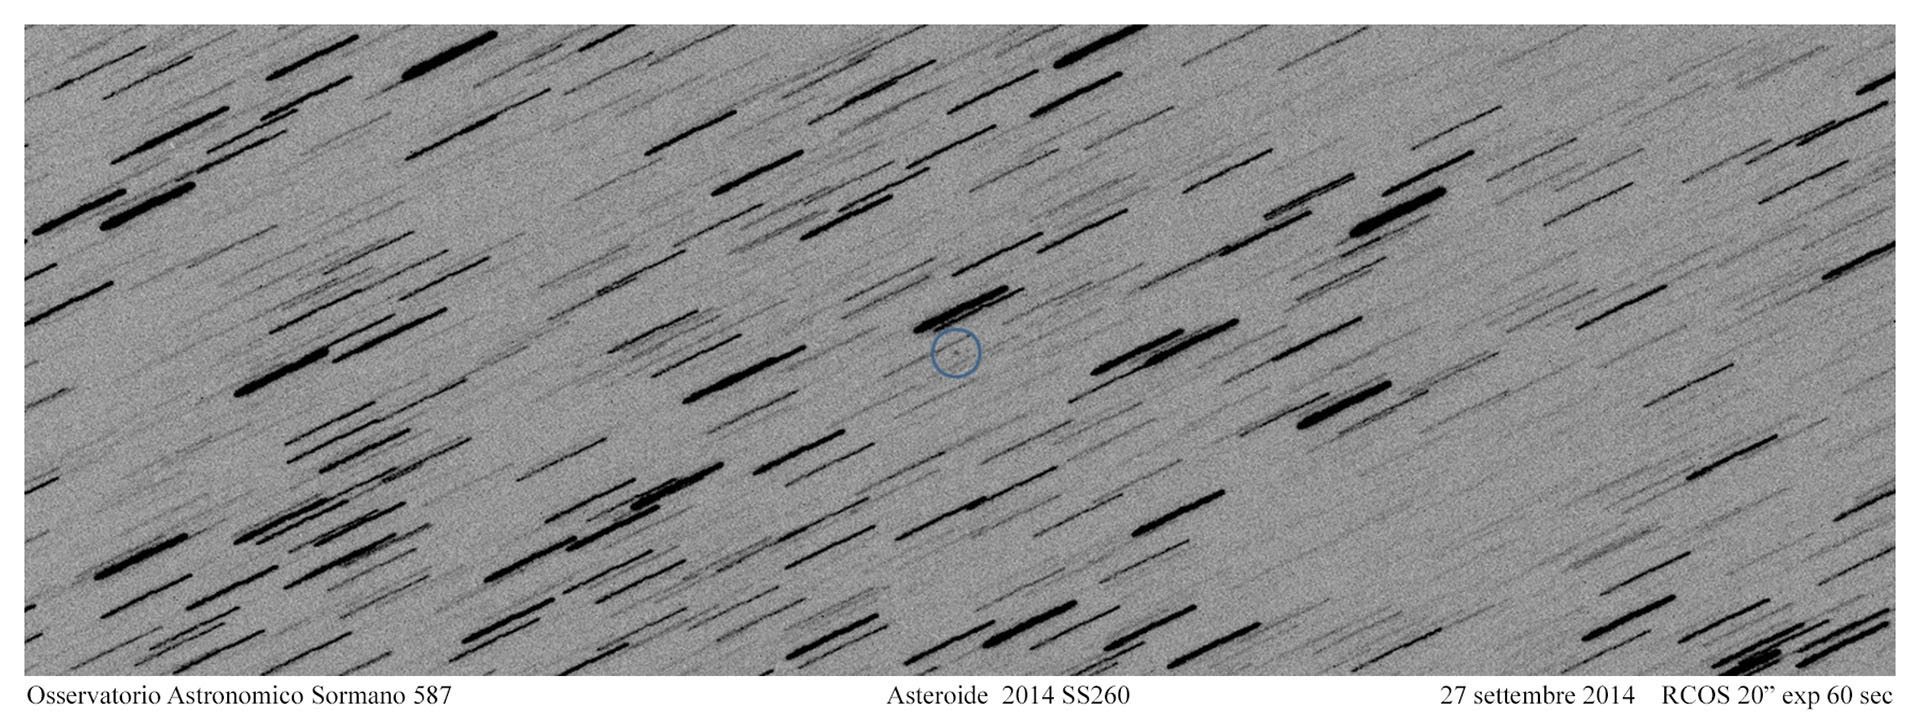 Asteroide 2014 SS260